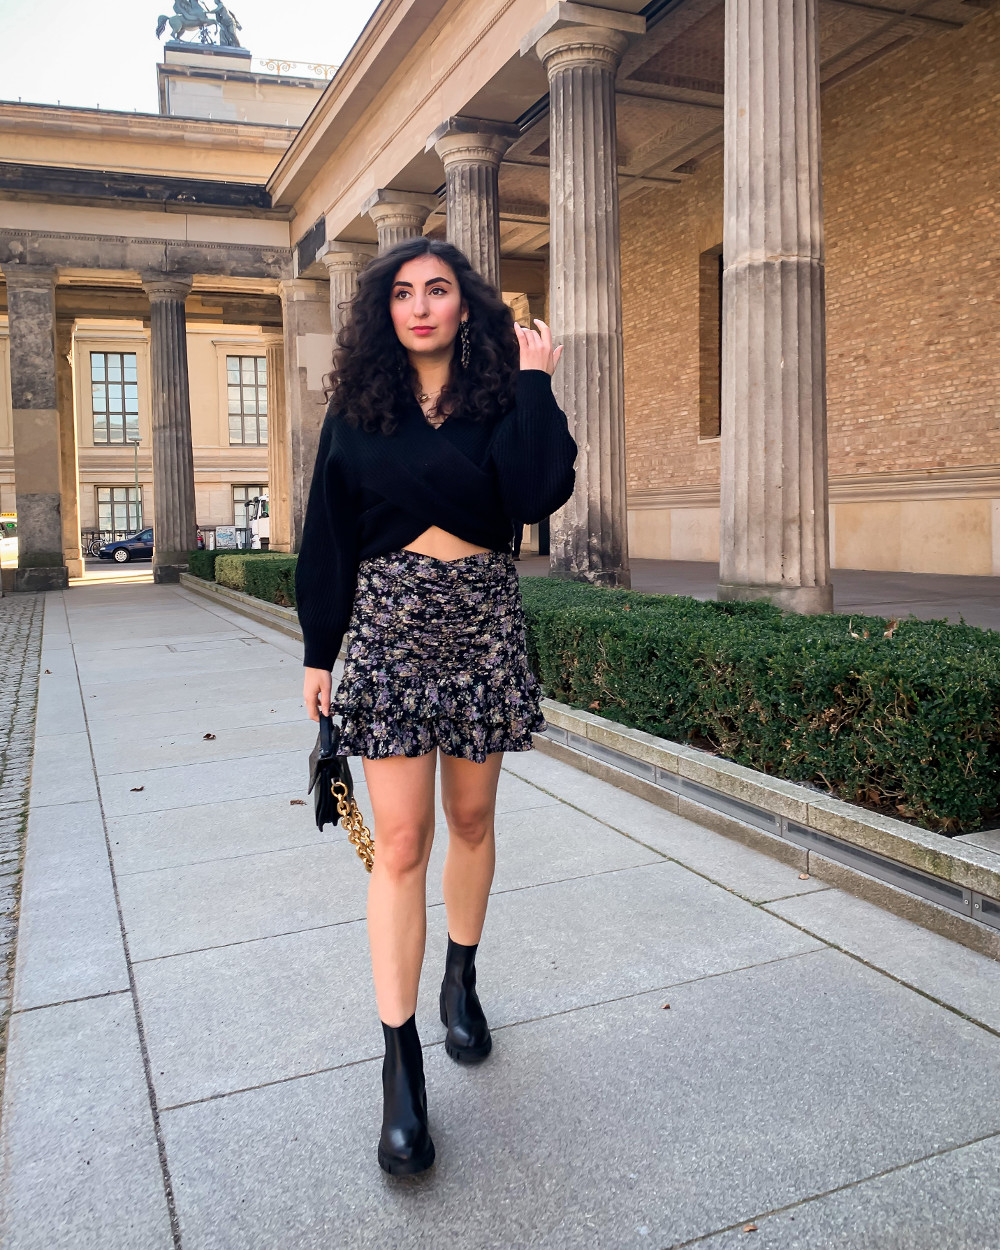 sacha boots fall inspiration 2021 skirts and boots autumn city looks